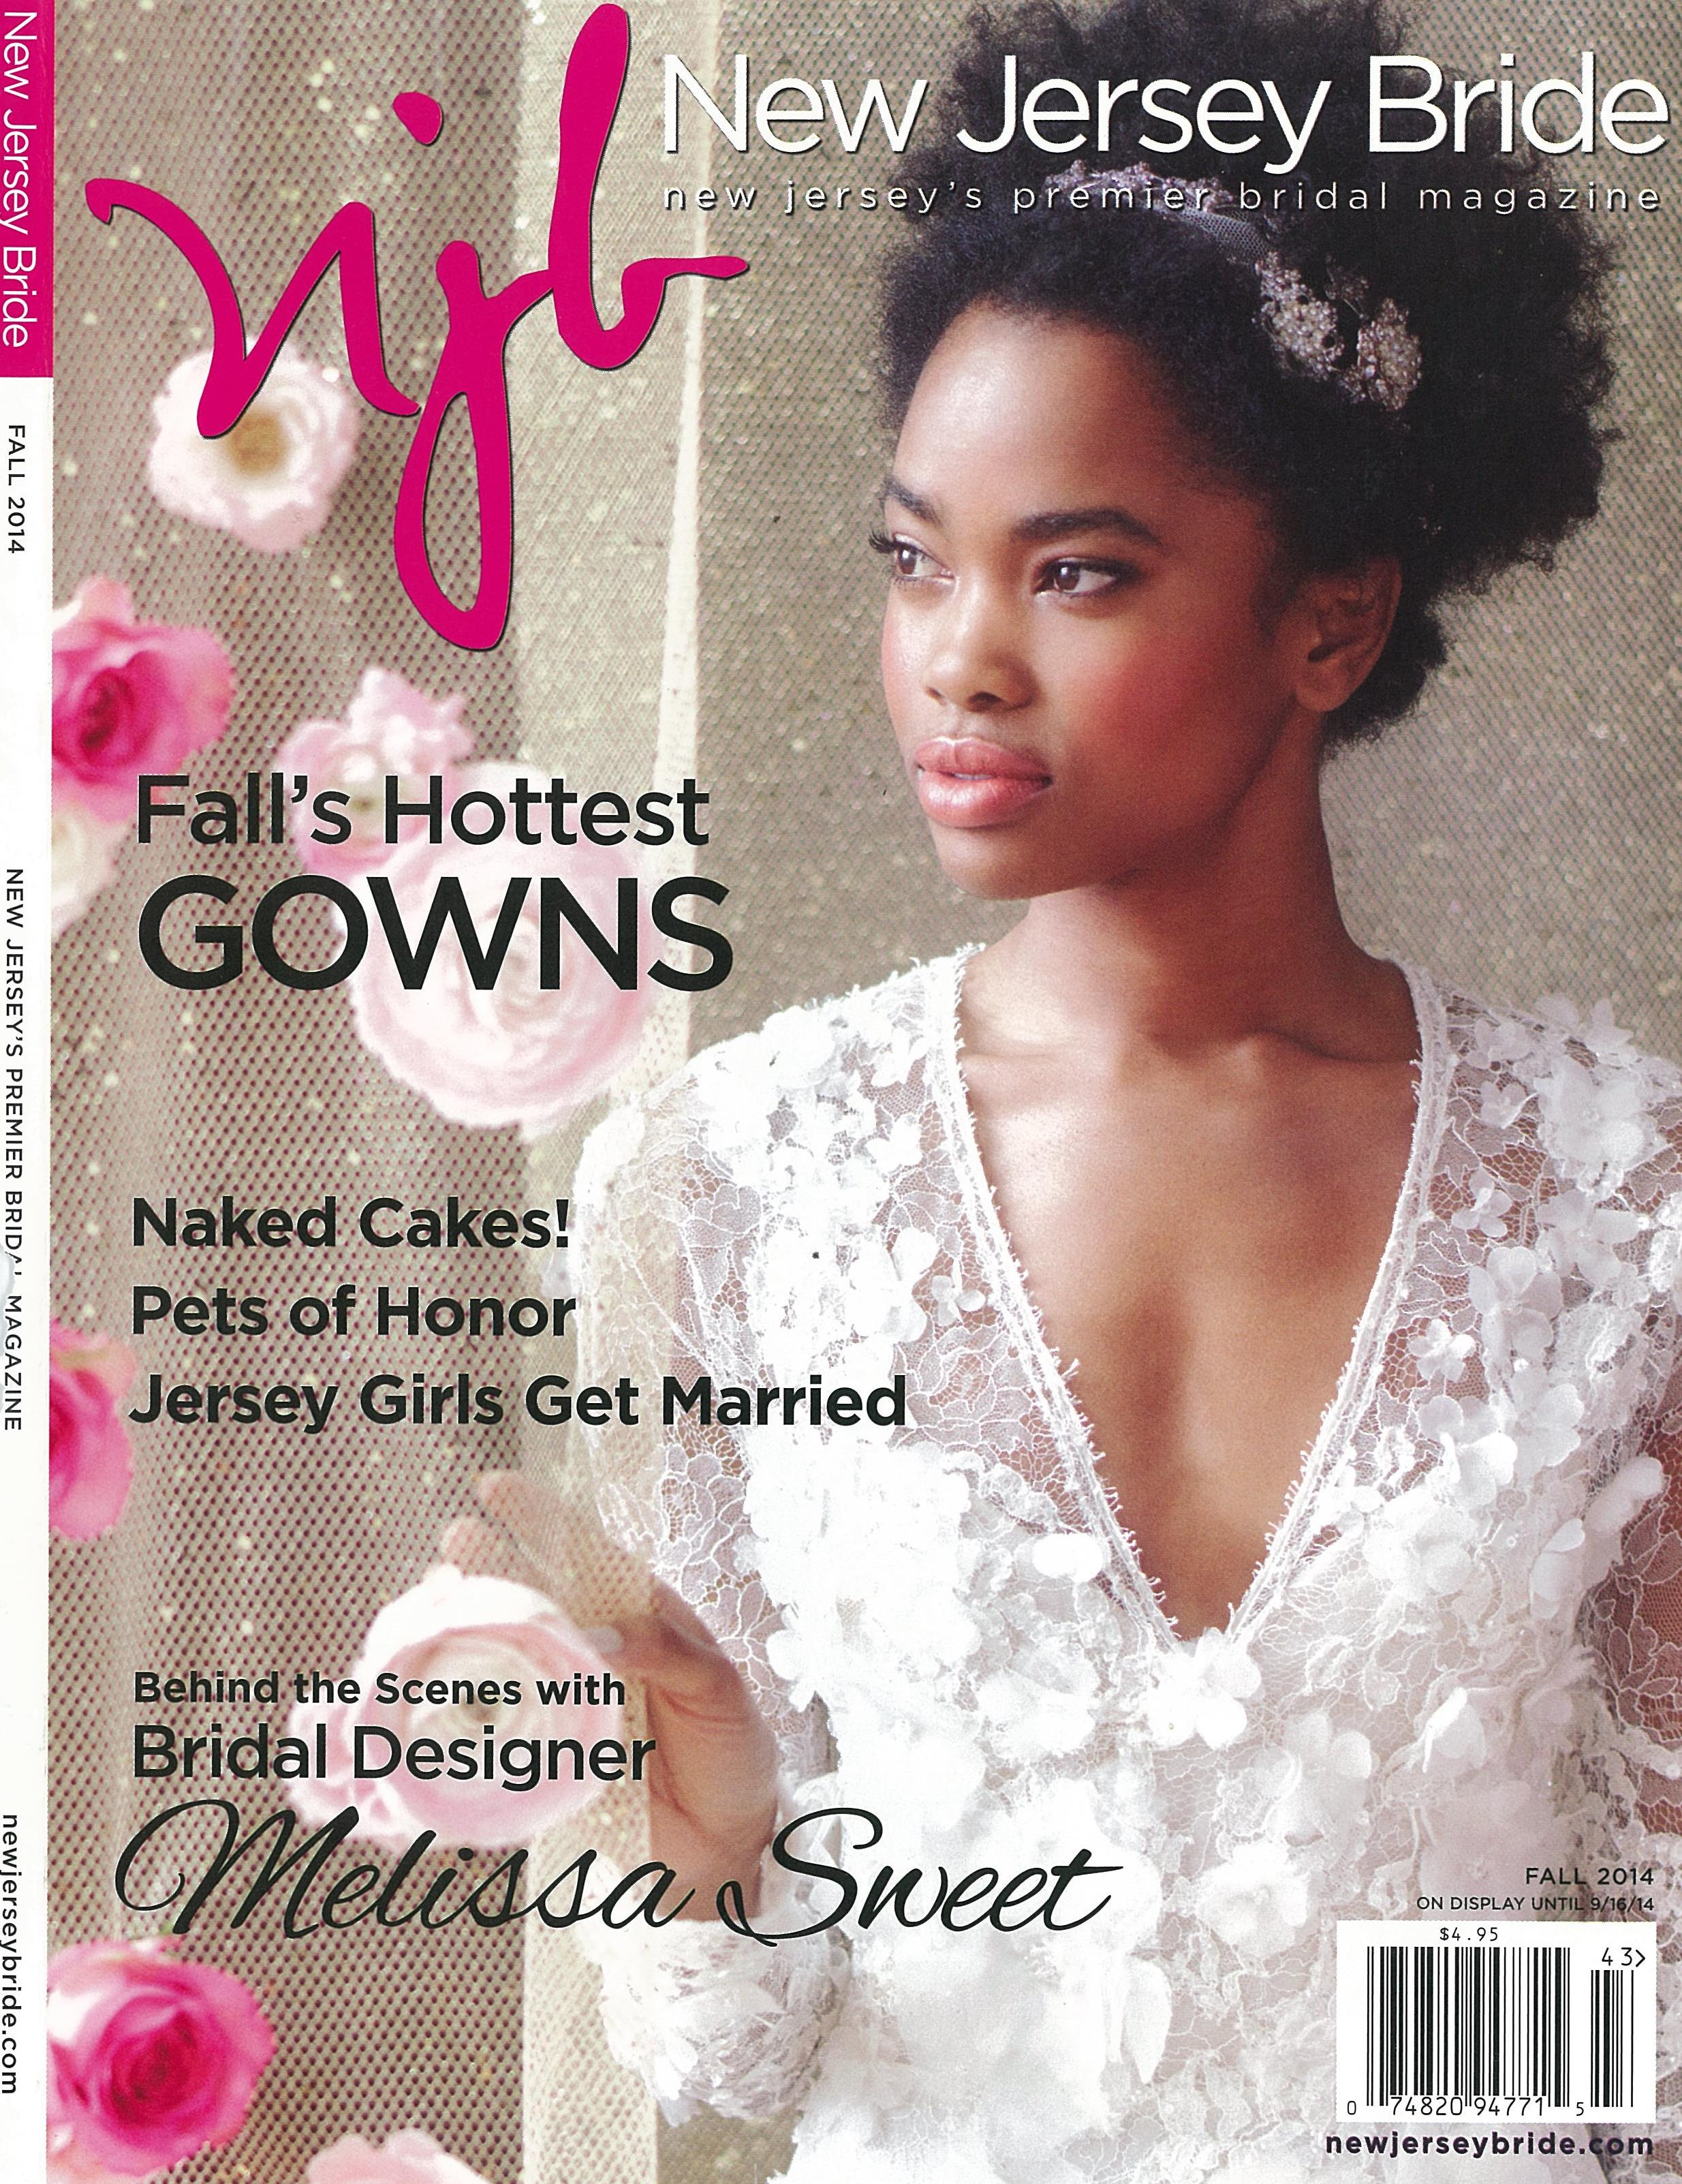 NJ Bride Fall 2014 Cover.jpg